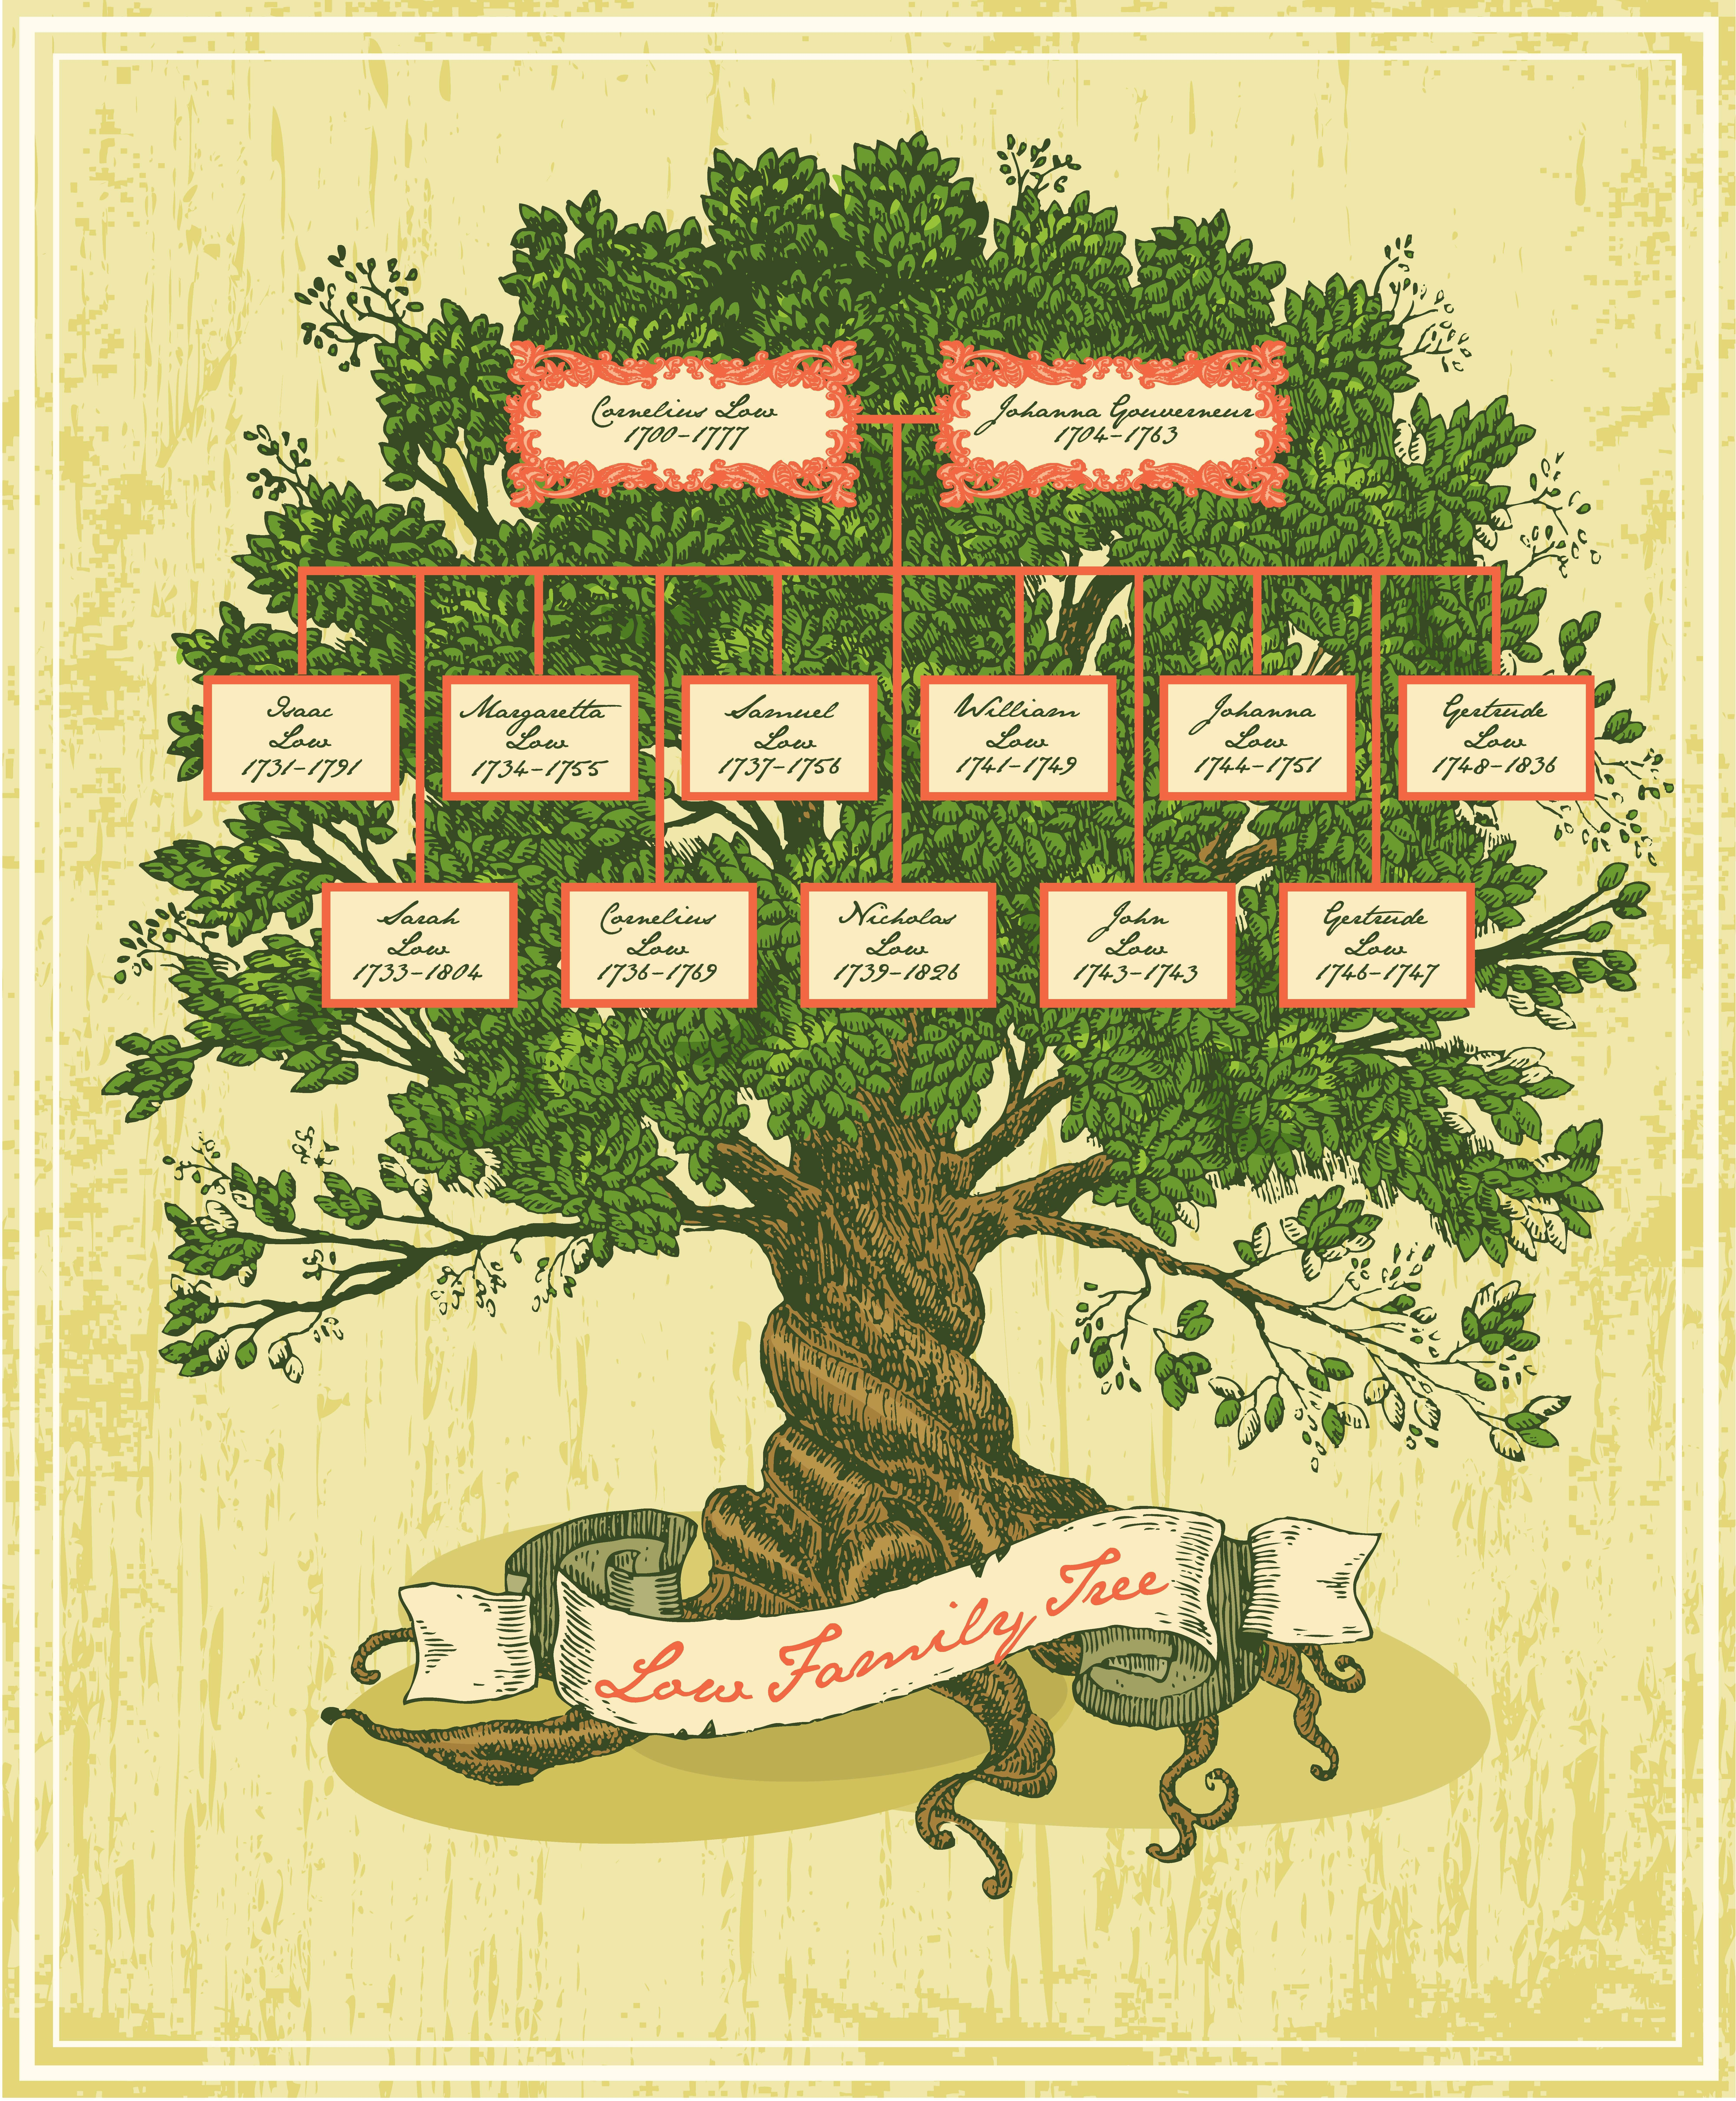 Low Family Tree Credits Middlesex County Office Of